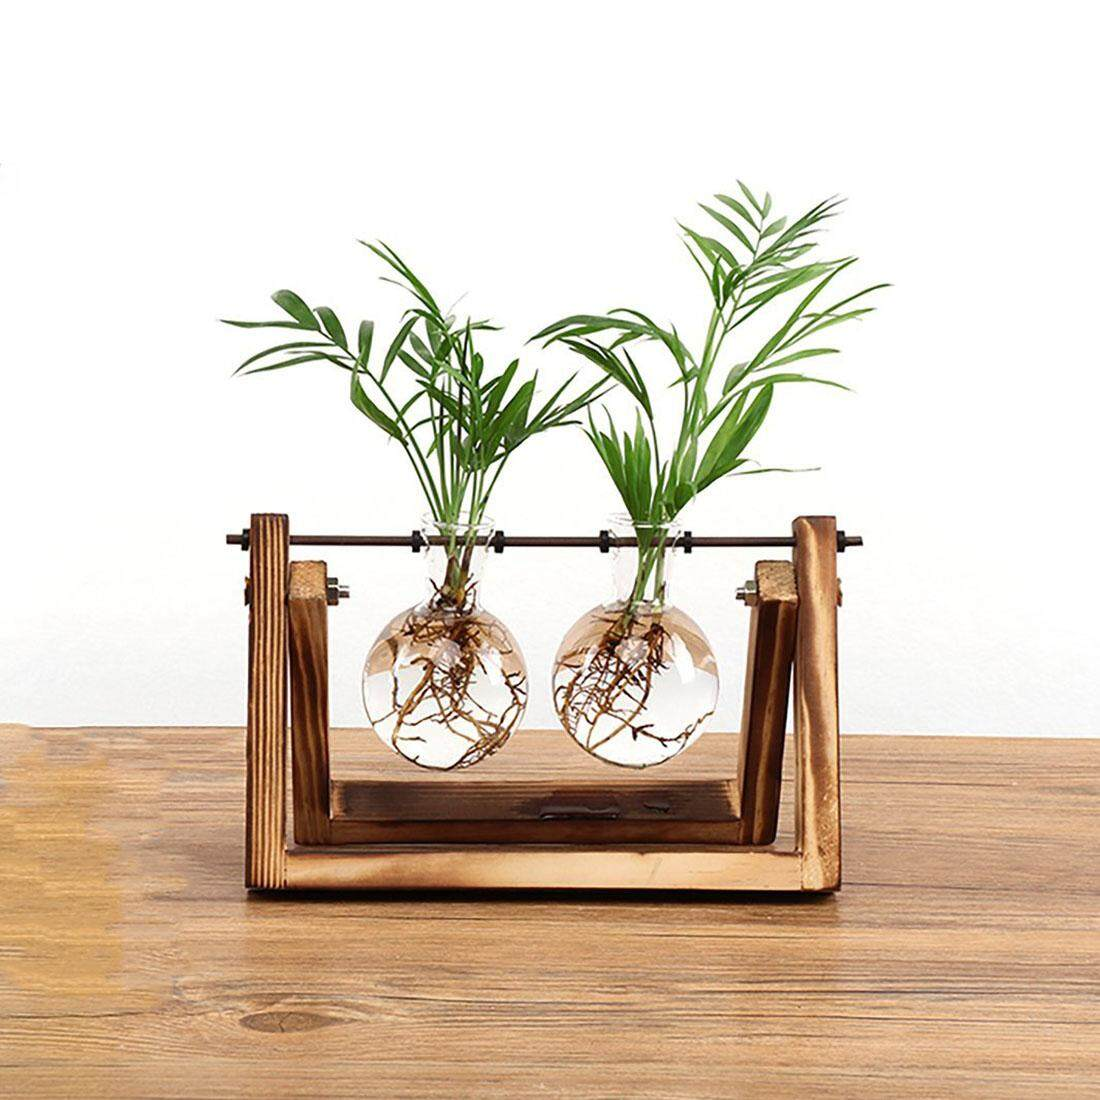 Creative Bulb Vase Plant Glass Hydroponic Container Farm Decoration Wooden Flowerpot Home Decorations - Intl By Sunnny2015.